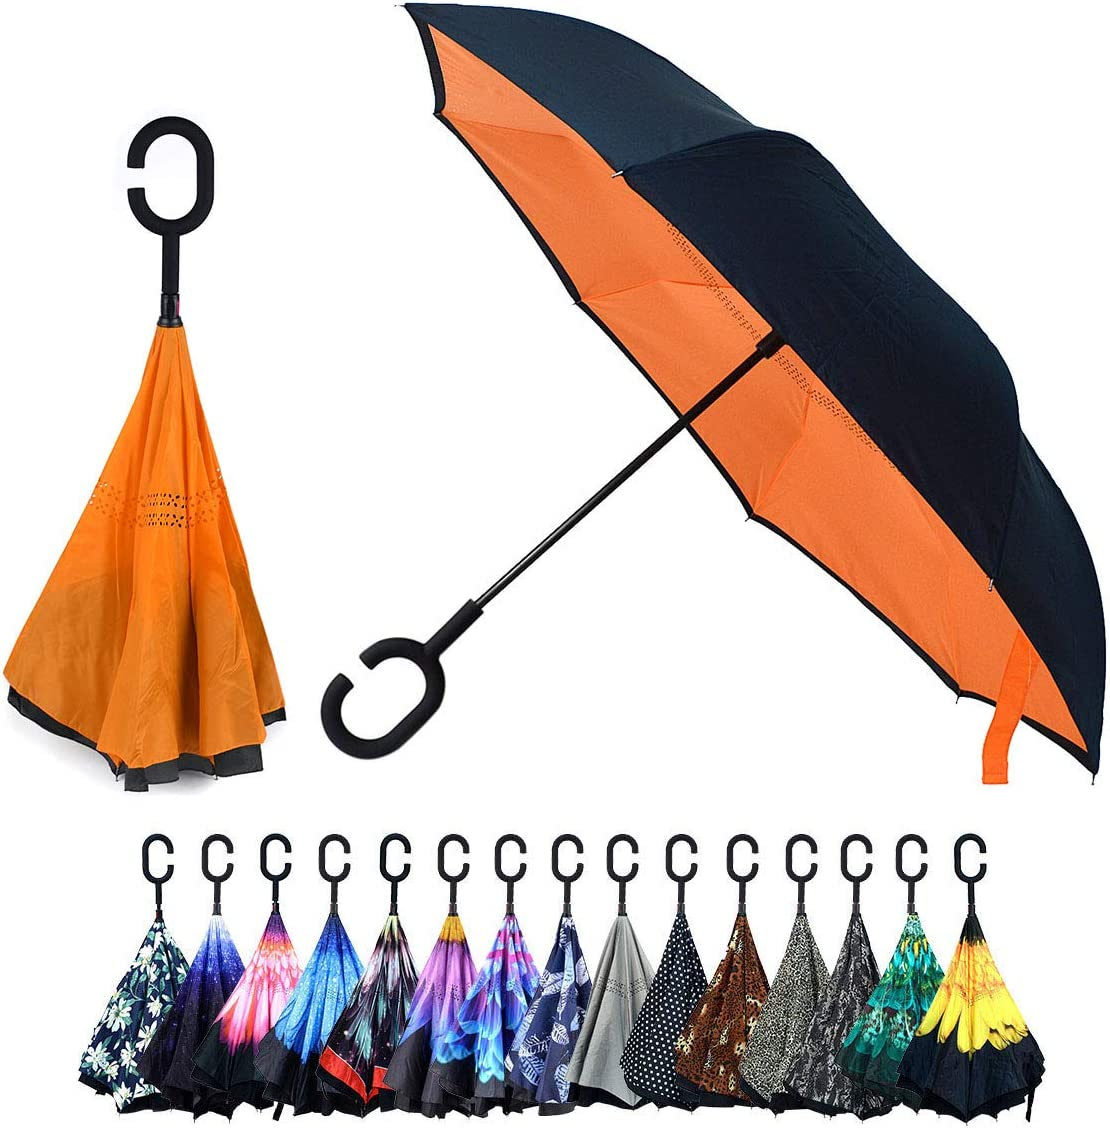 Double Layer Inverted Umbrella With C-Shaped Handle Dumbo Reverse Windproof Umbrella UV Protection Upside Down Umbrella